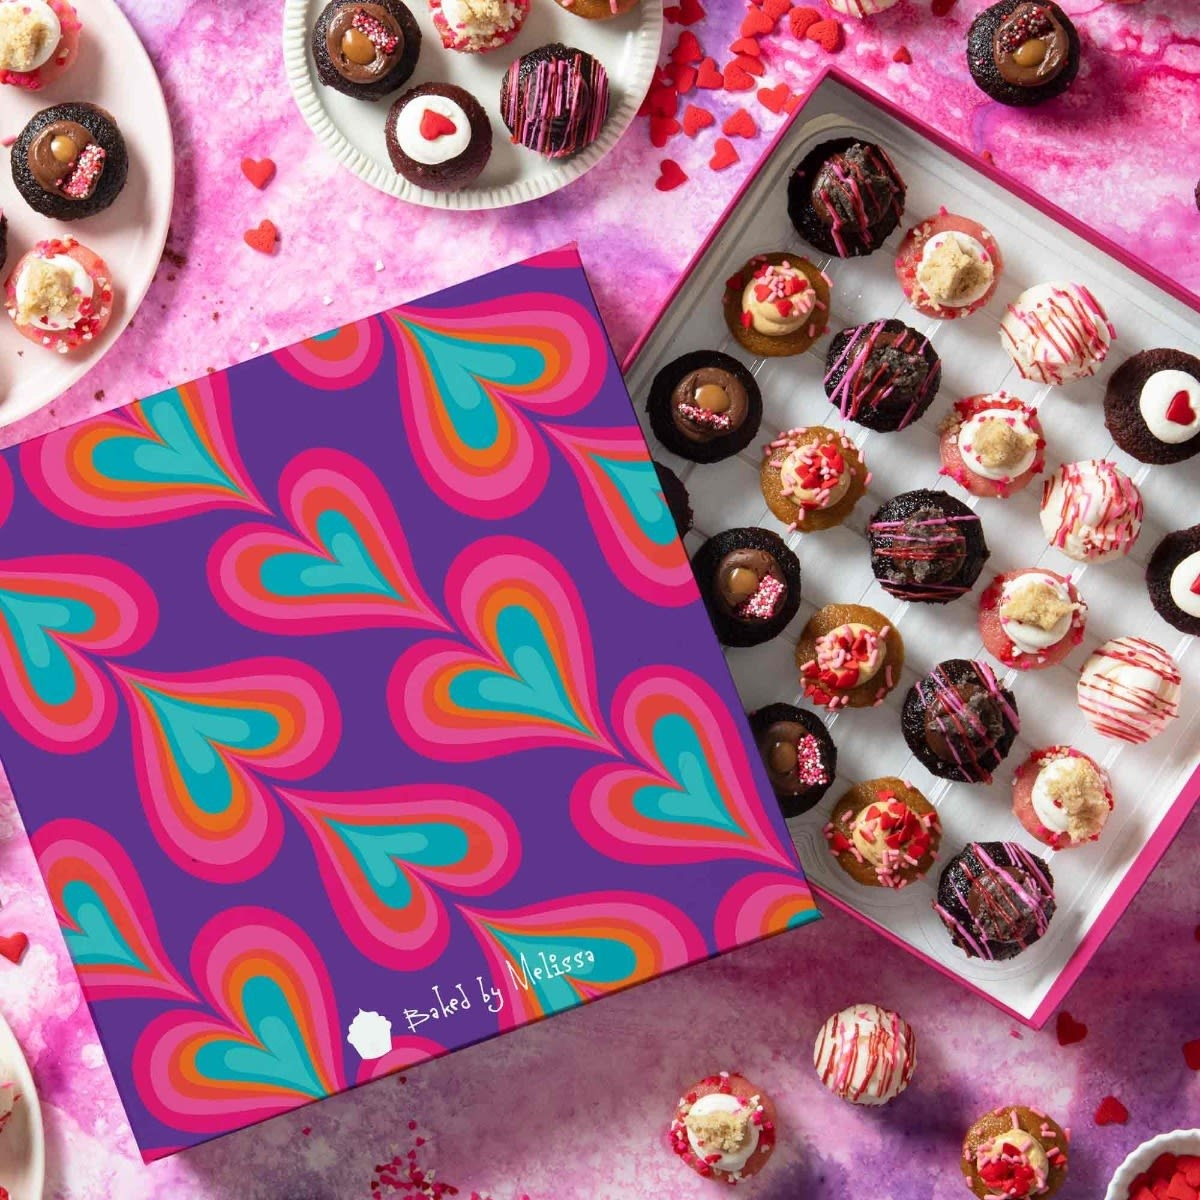 the valentine's day themed box of cupcakes